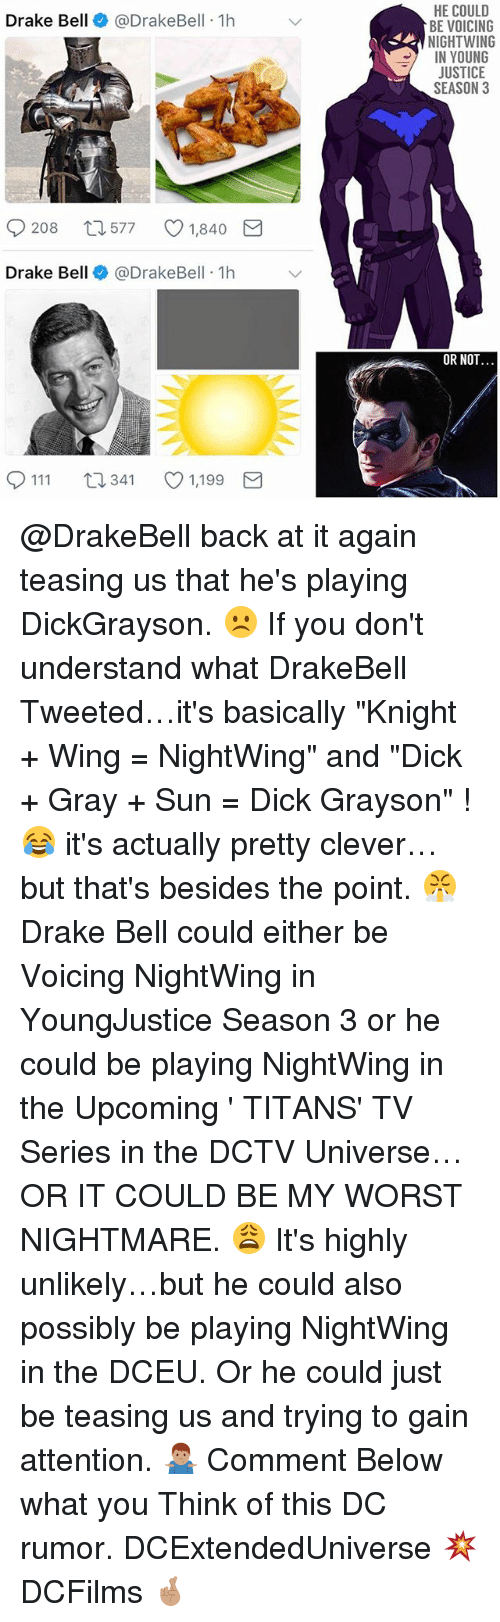 "Cleverity: HE COULD  BE VOICING  NIGHTWING  IN YOUNG  JUSTICE  SEASON 3  Drake Bell@DrakeBell 1h  208  577  1,840  Drake Bell @DrakeBell 1h  OR NOT  0111 t  341 1,199 @DrakeBell back at it again teasing us that he's playing DickGrayson. ☹️ If you don't understand what DrakeBell Tweeted…it's basically ""Knight + Wing = NightWing"" and ""Dick + Gray + Sun = Dick Grayson"" ! 😂 it's actually pretty clever…but that's besides the point. 😤 Drake Bell could either be Voicing NightWing in YoungJustice Season 3 or he could be playing NightWing in the Upcoming ' TITANS' TV Series in the DCTV Universe…OR IT COULD BE MY WORST NIGHTMARE. 😩 It's highly unlikely…but he could also possibly be playing NightWing in the DCEU. Or he could just be teasing us and trying to gain attention. 🤷🏽‍♂️ Comment Below what you Think of this DC rumor. DCExtendedUniverse 💥 DCFilms 🤞🏽"